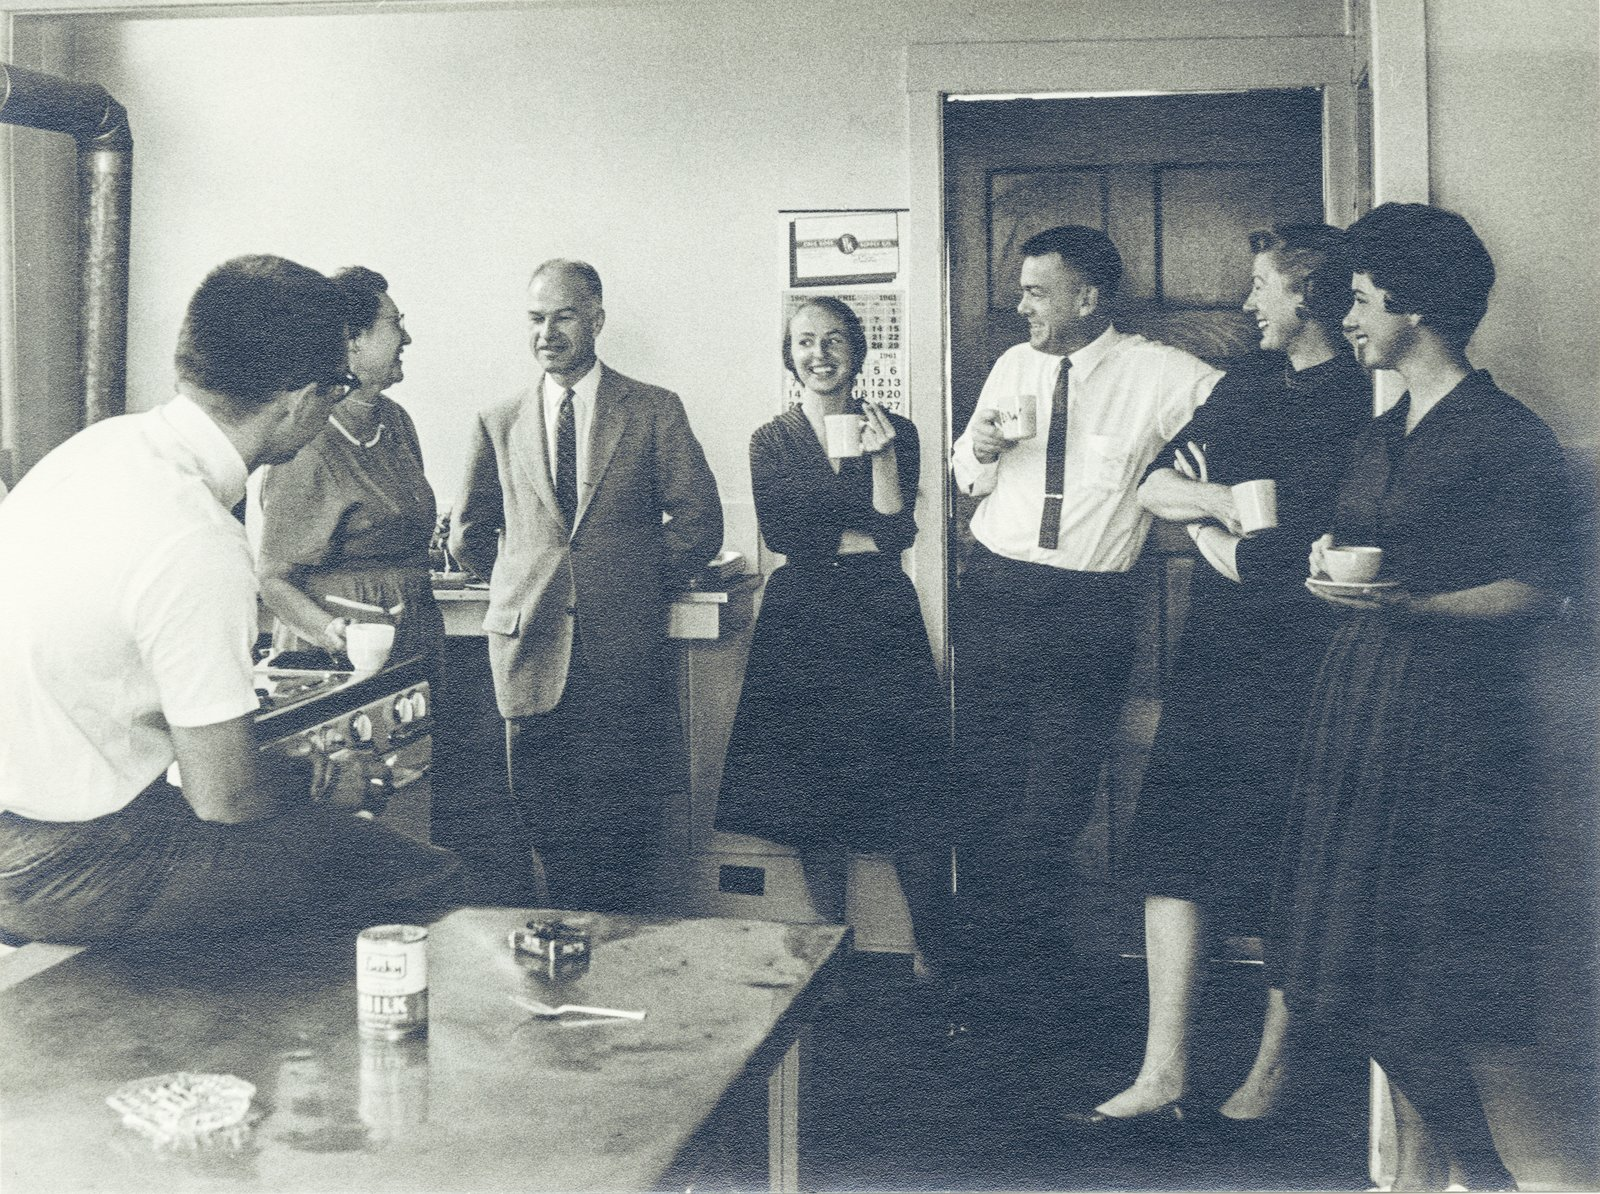 The IPAR staff takes a break in the kitchen. In 1992, the organization renamed itself the Institute of Personality and Social Research, which still operates at UC Berkeley today.  Photo 13 of 14 in This Book Unearths a Midcentury Personality Study on Architectural Giants